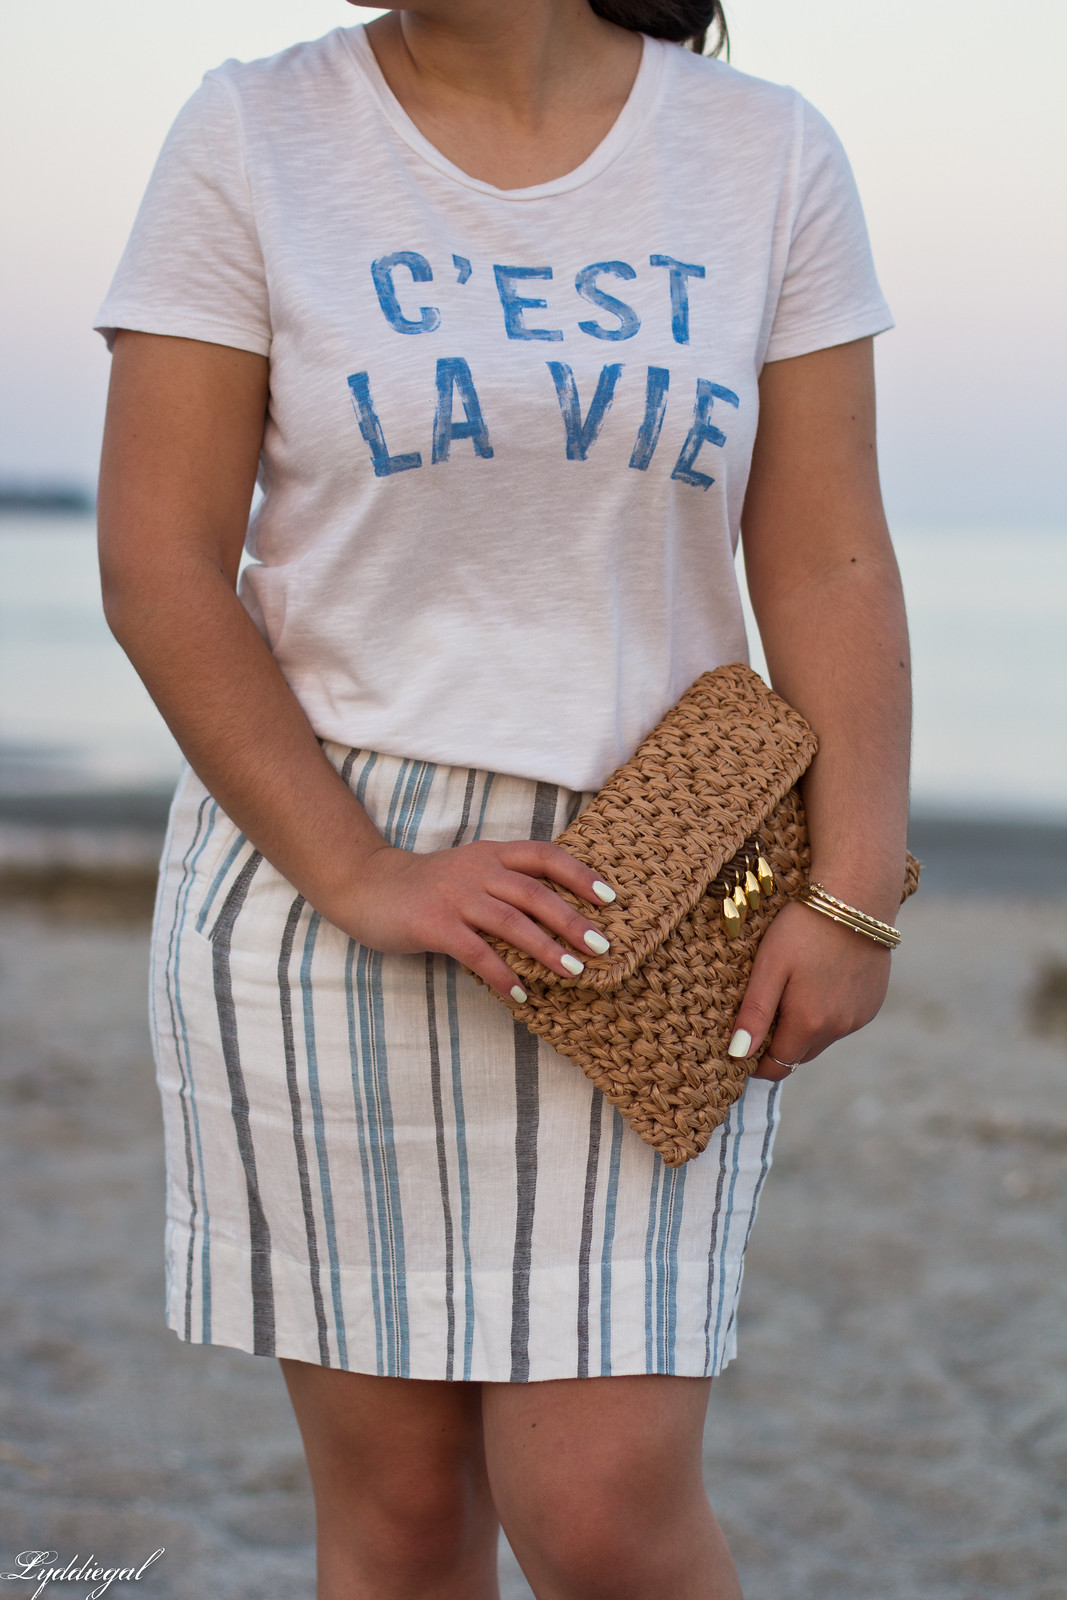 c'est la vie tee, striped linen skirt, straw fedora, clutch-5.jpg